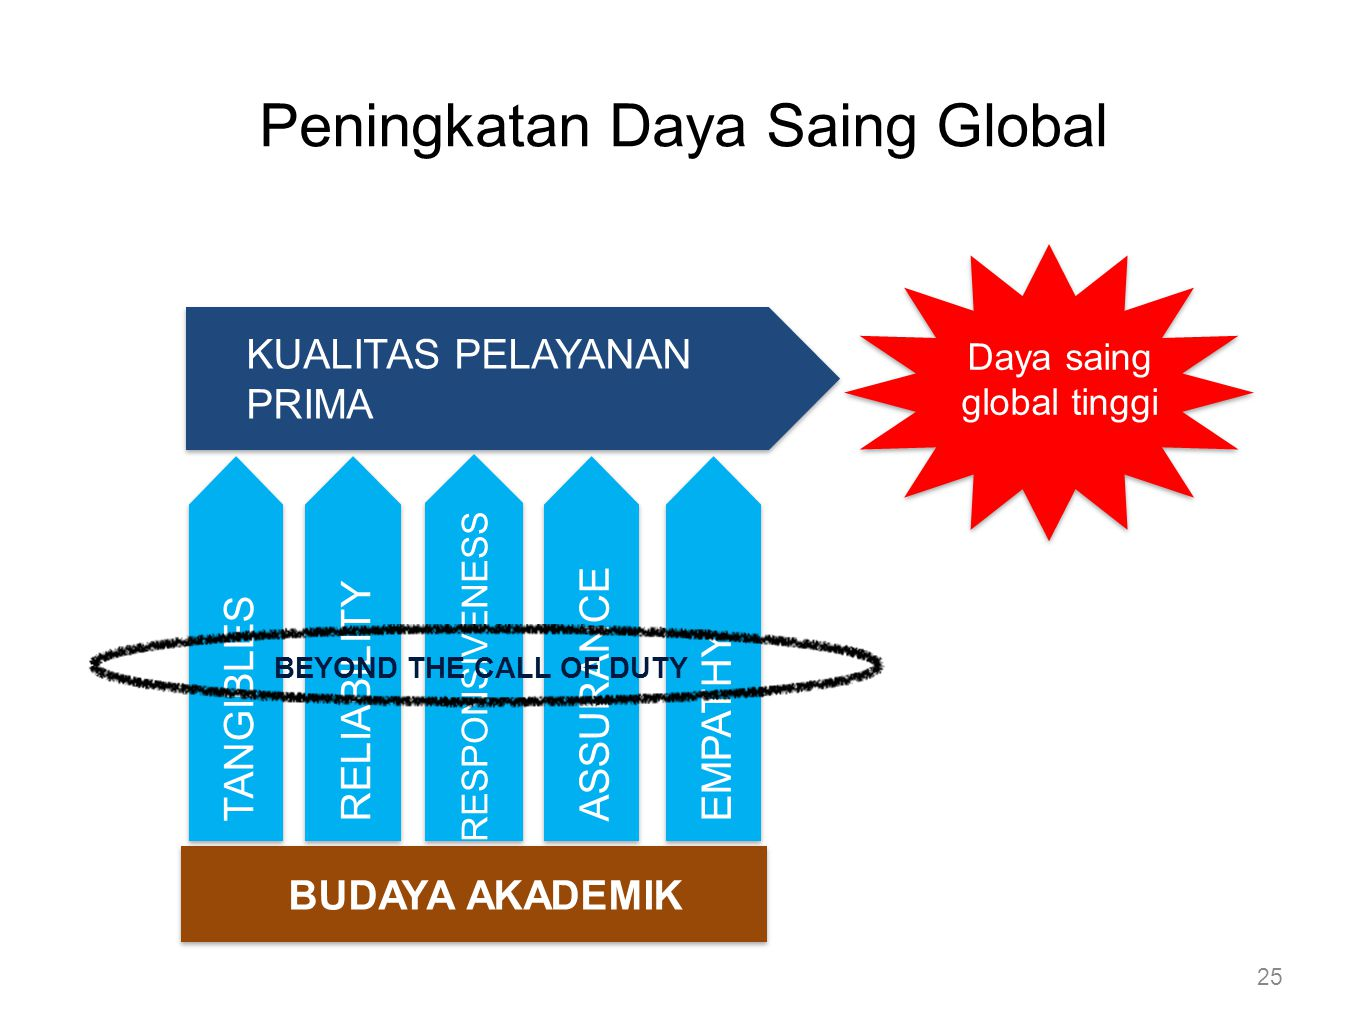 Peningkatan Daya Saing Global